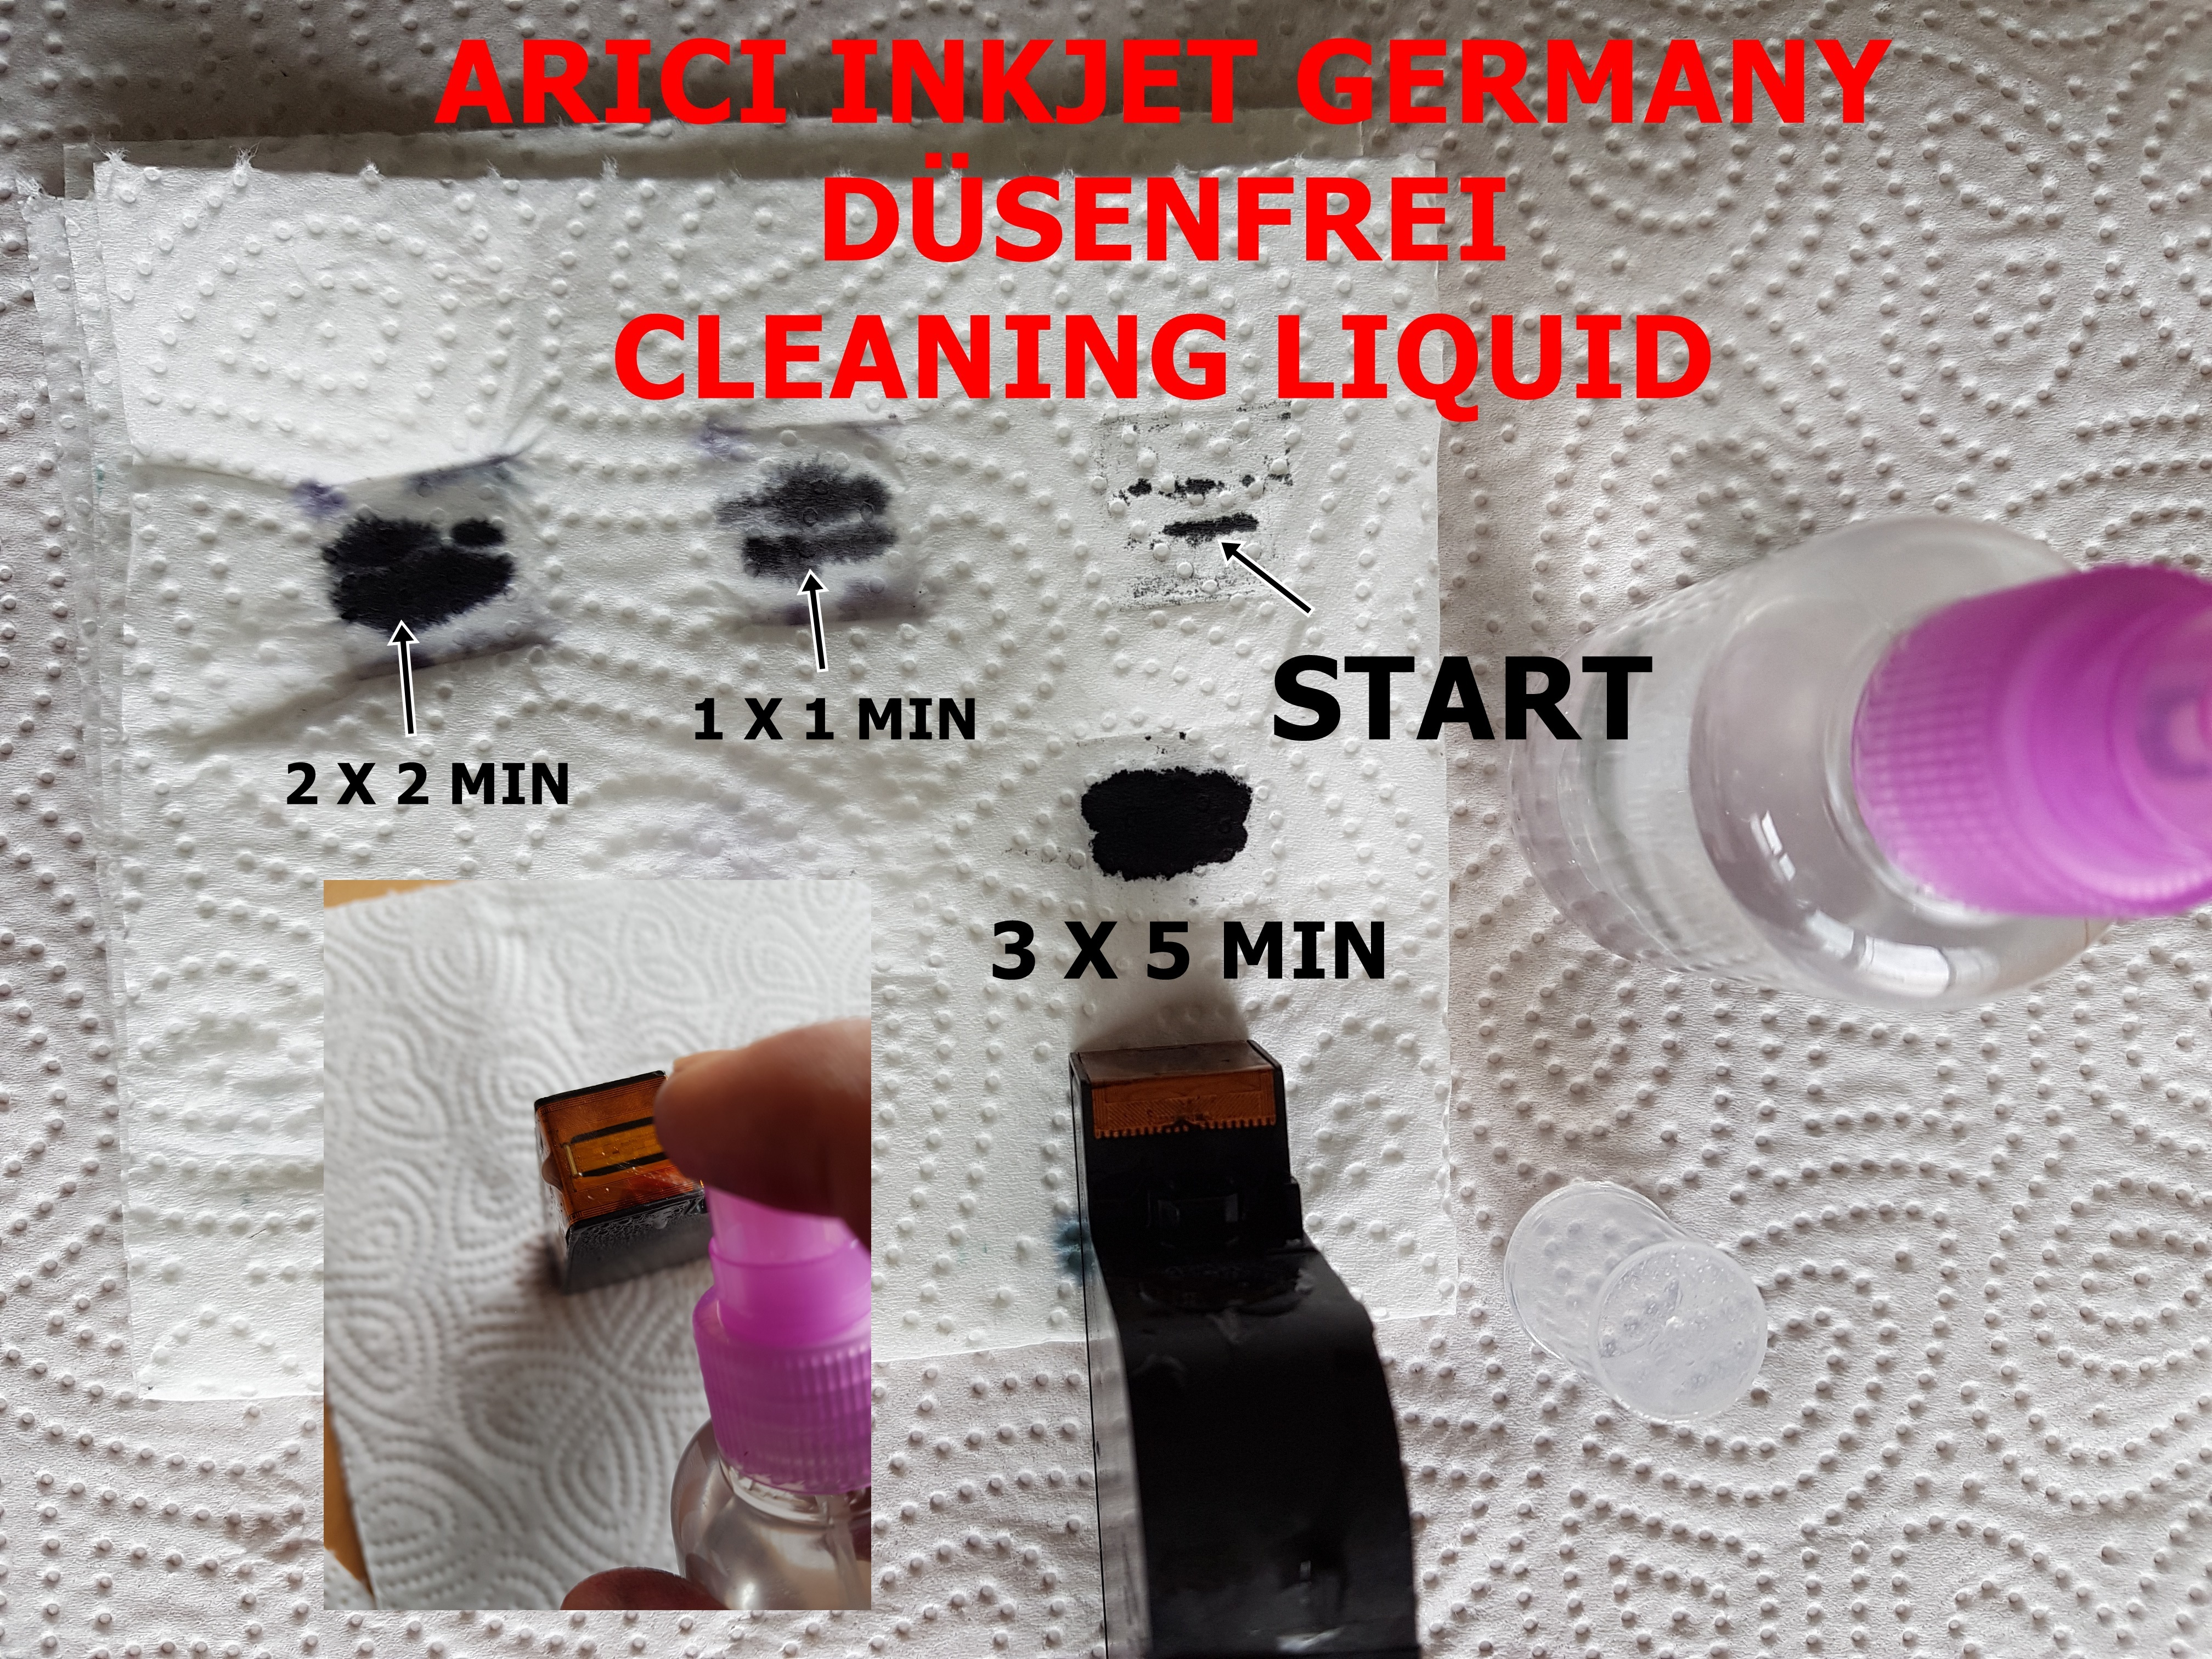 Nozzle cleaner, printhead cleaner, special cleaner for all ink printheads  -Spray 50ml